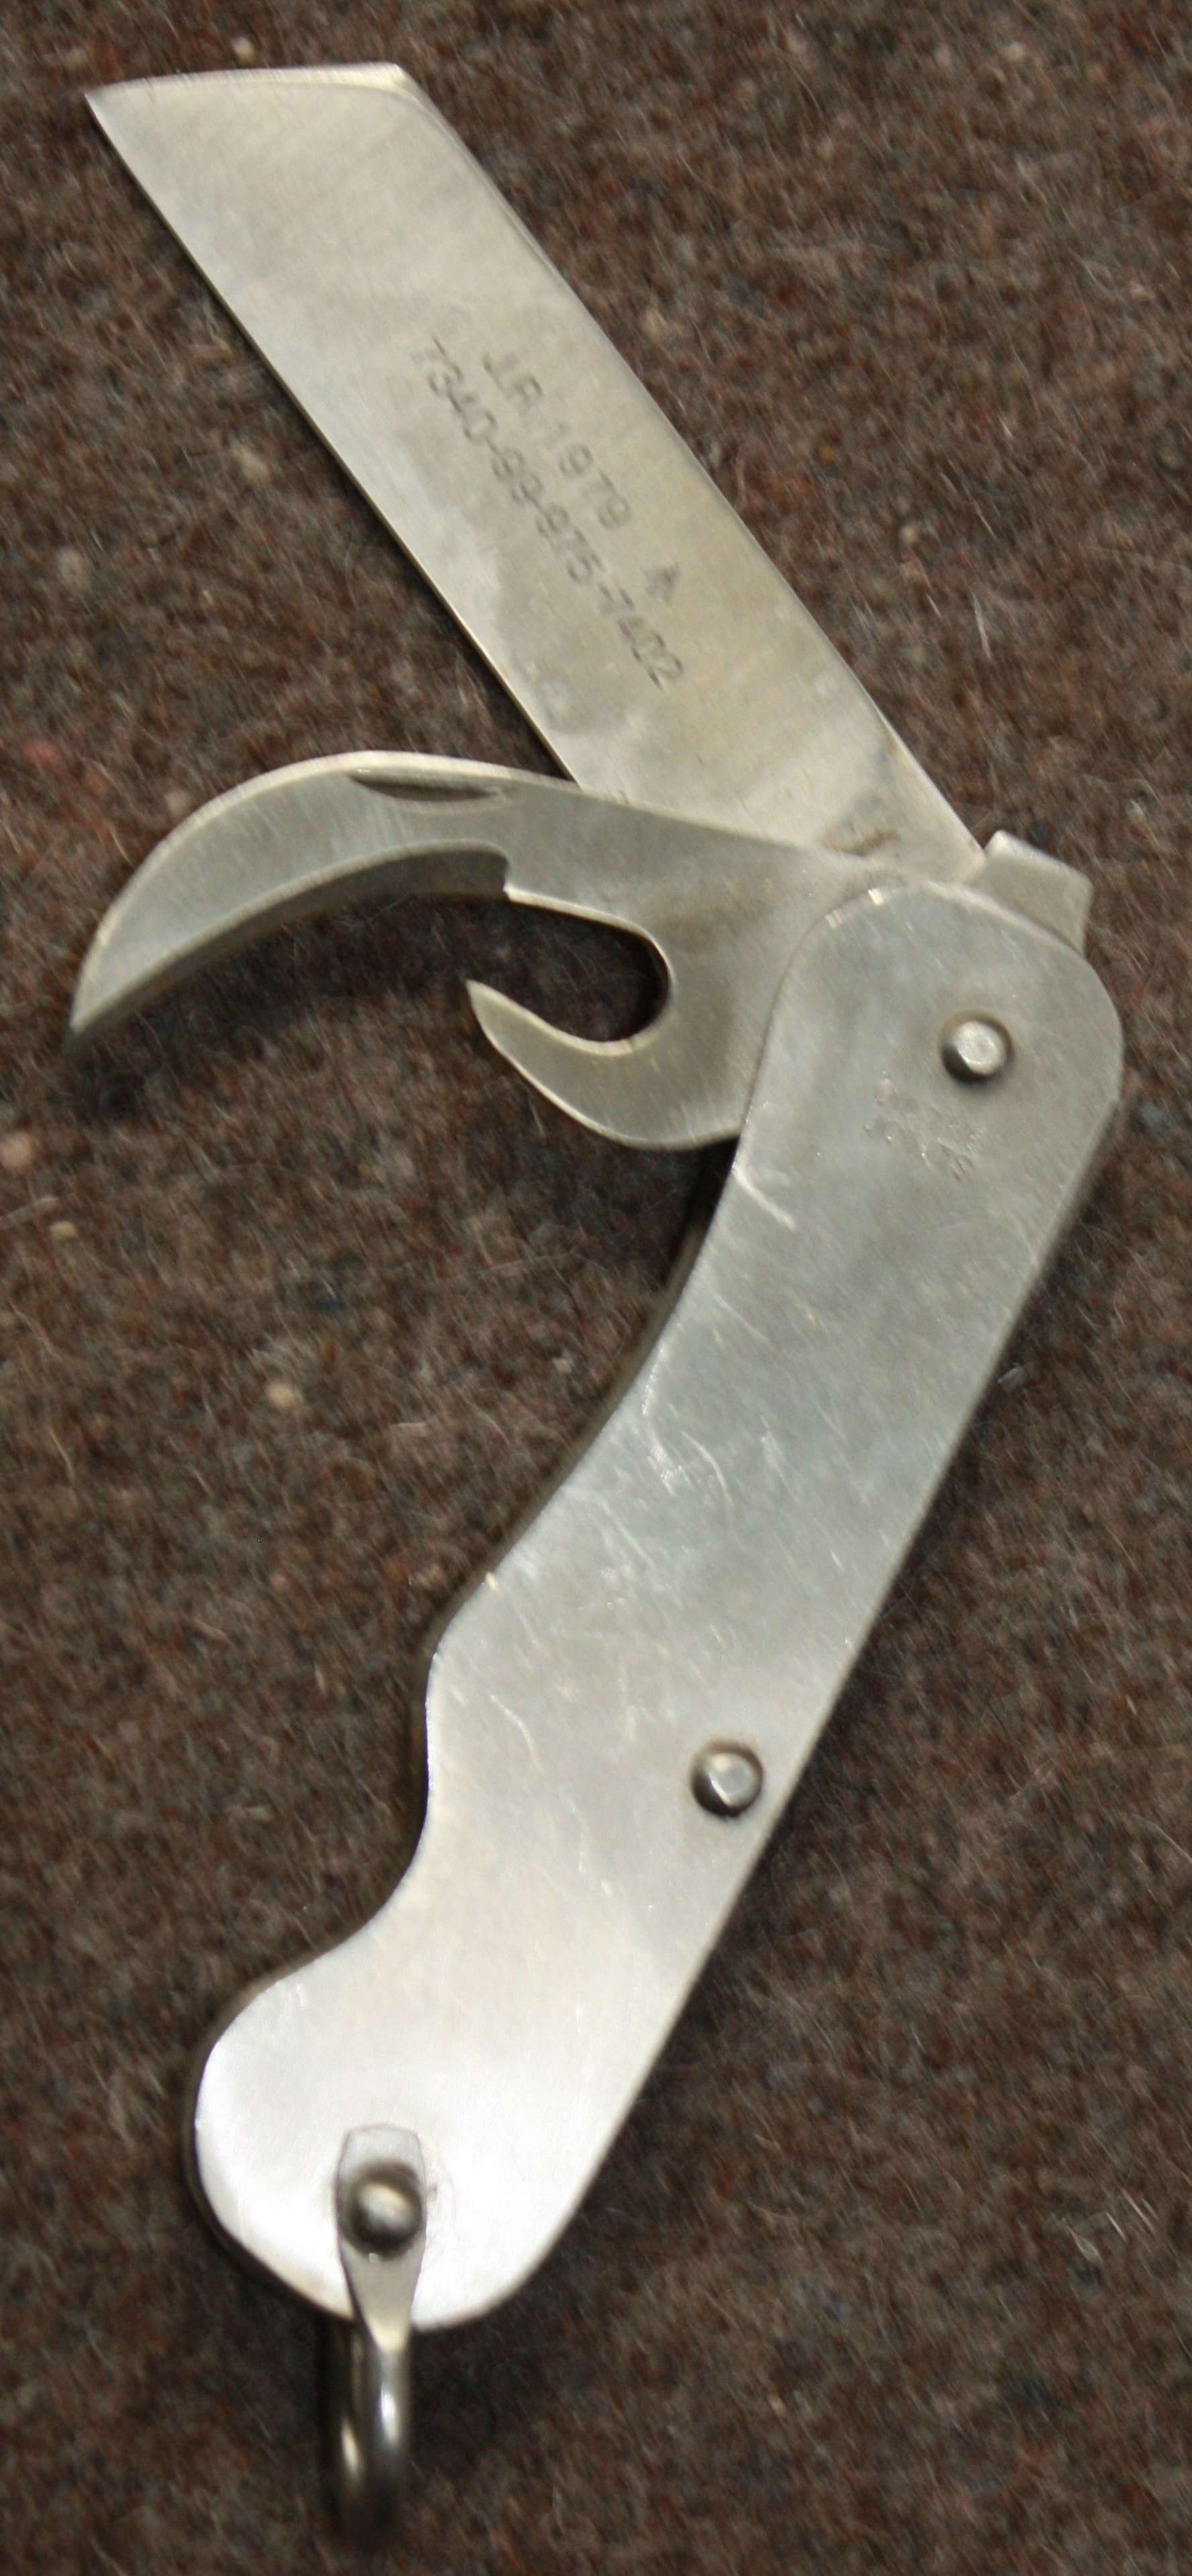 A VERY GOOD 1979 DATED BRITISH MILITARY ISSUE CLASP KNIFE